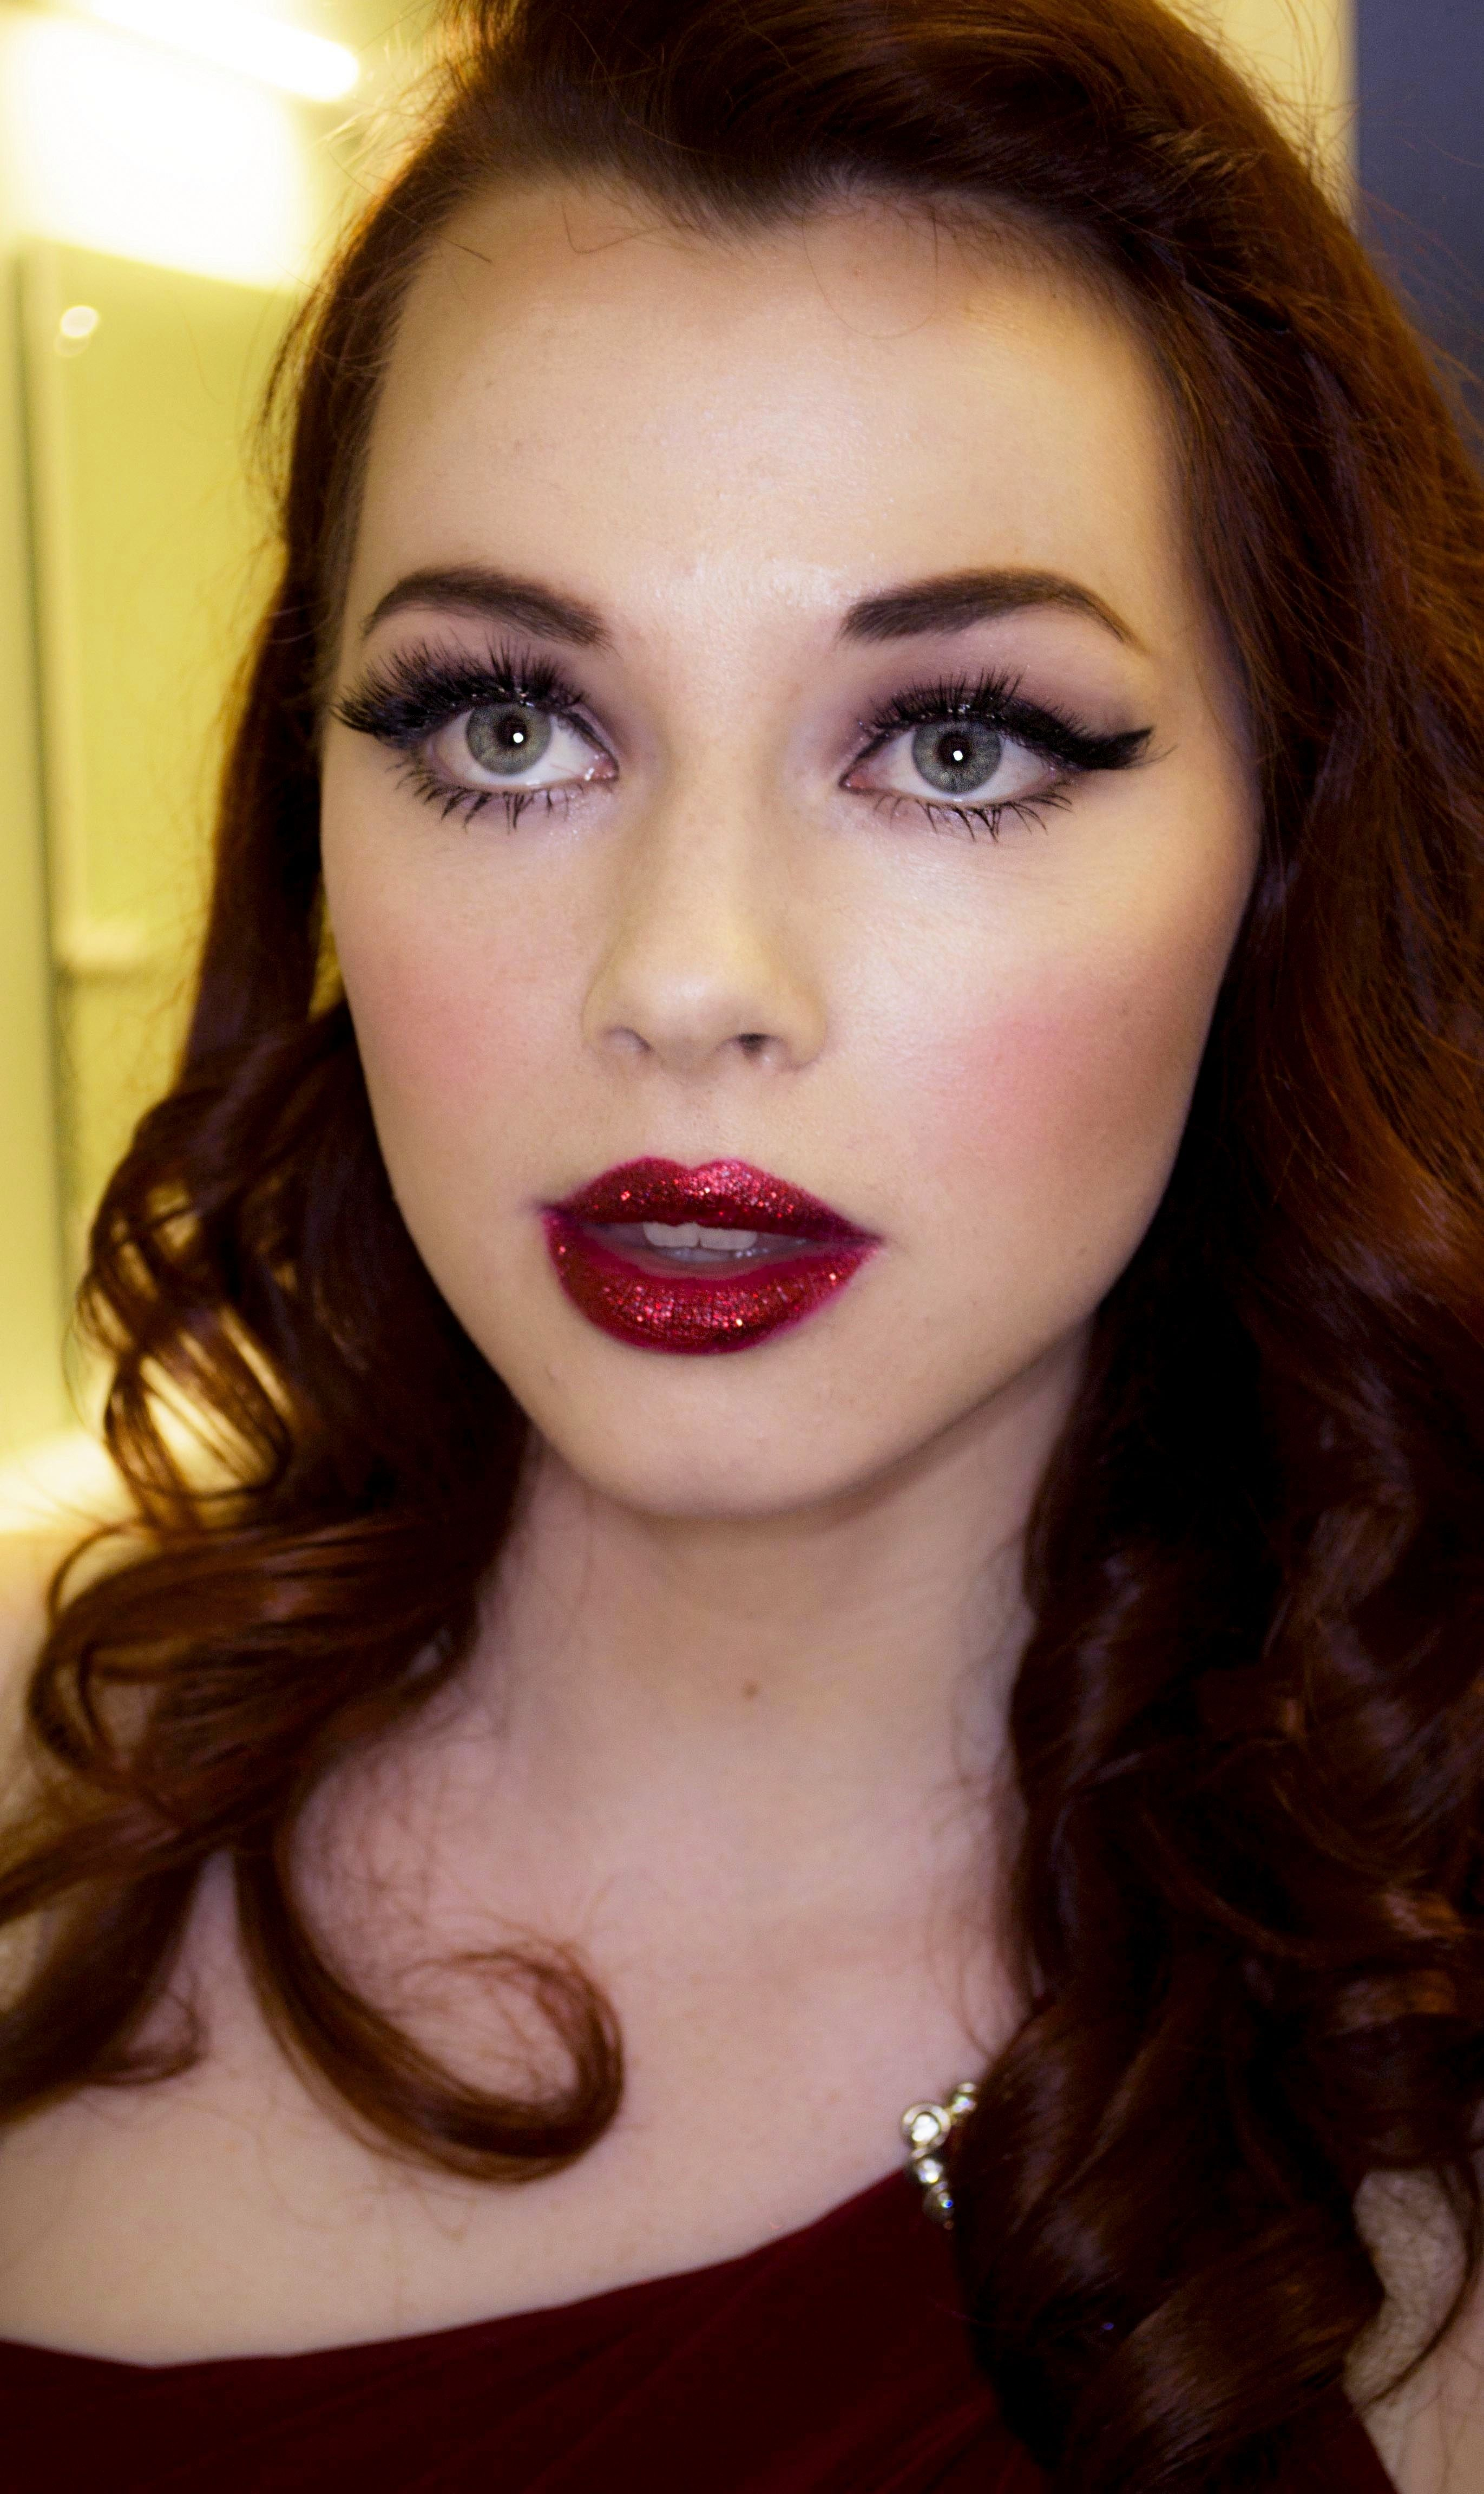 Glamour Makeup: Old Hollywood Glamour Makeup And Hair